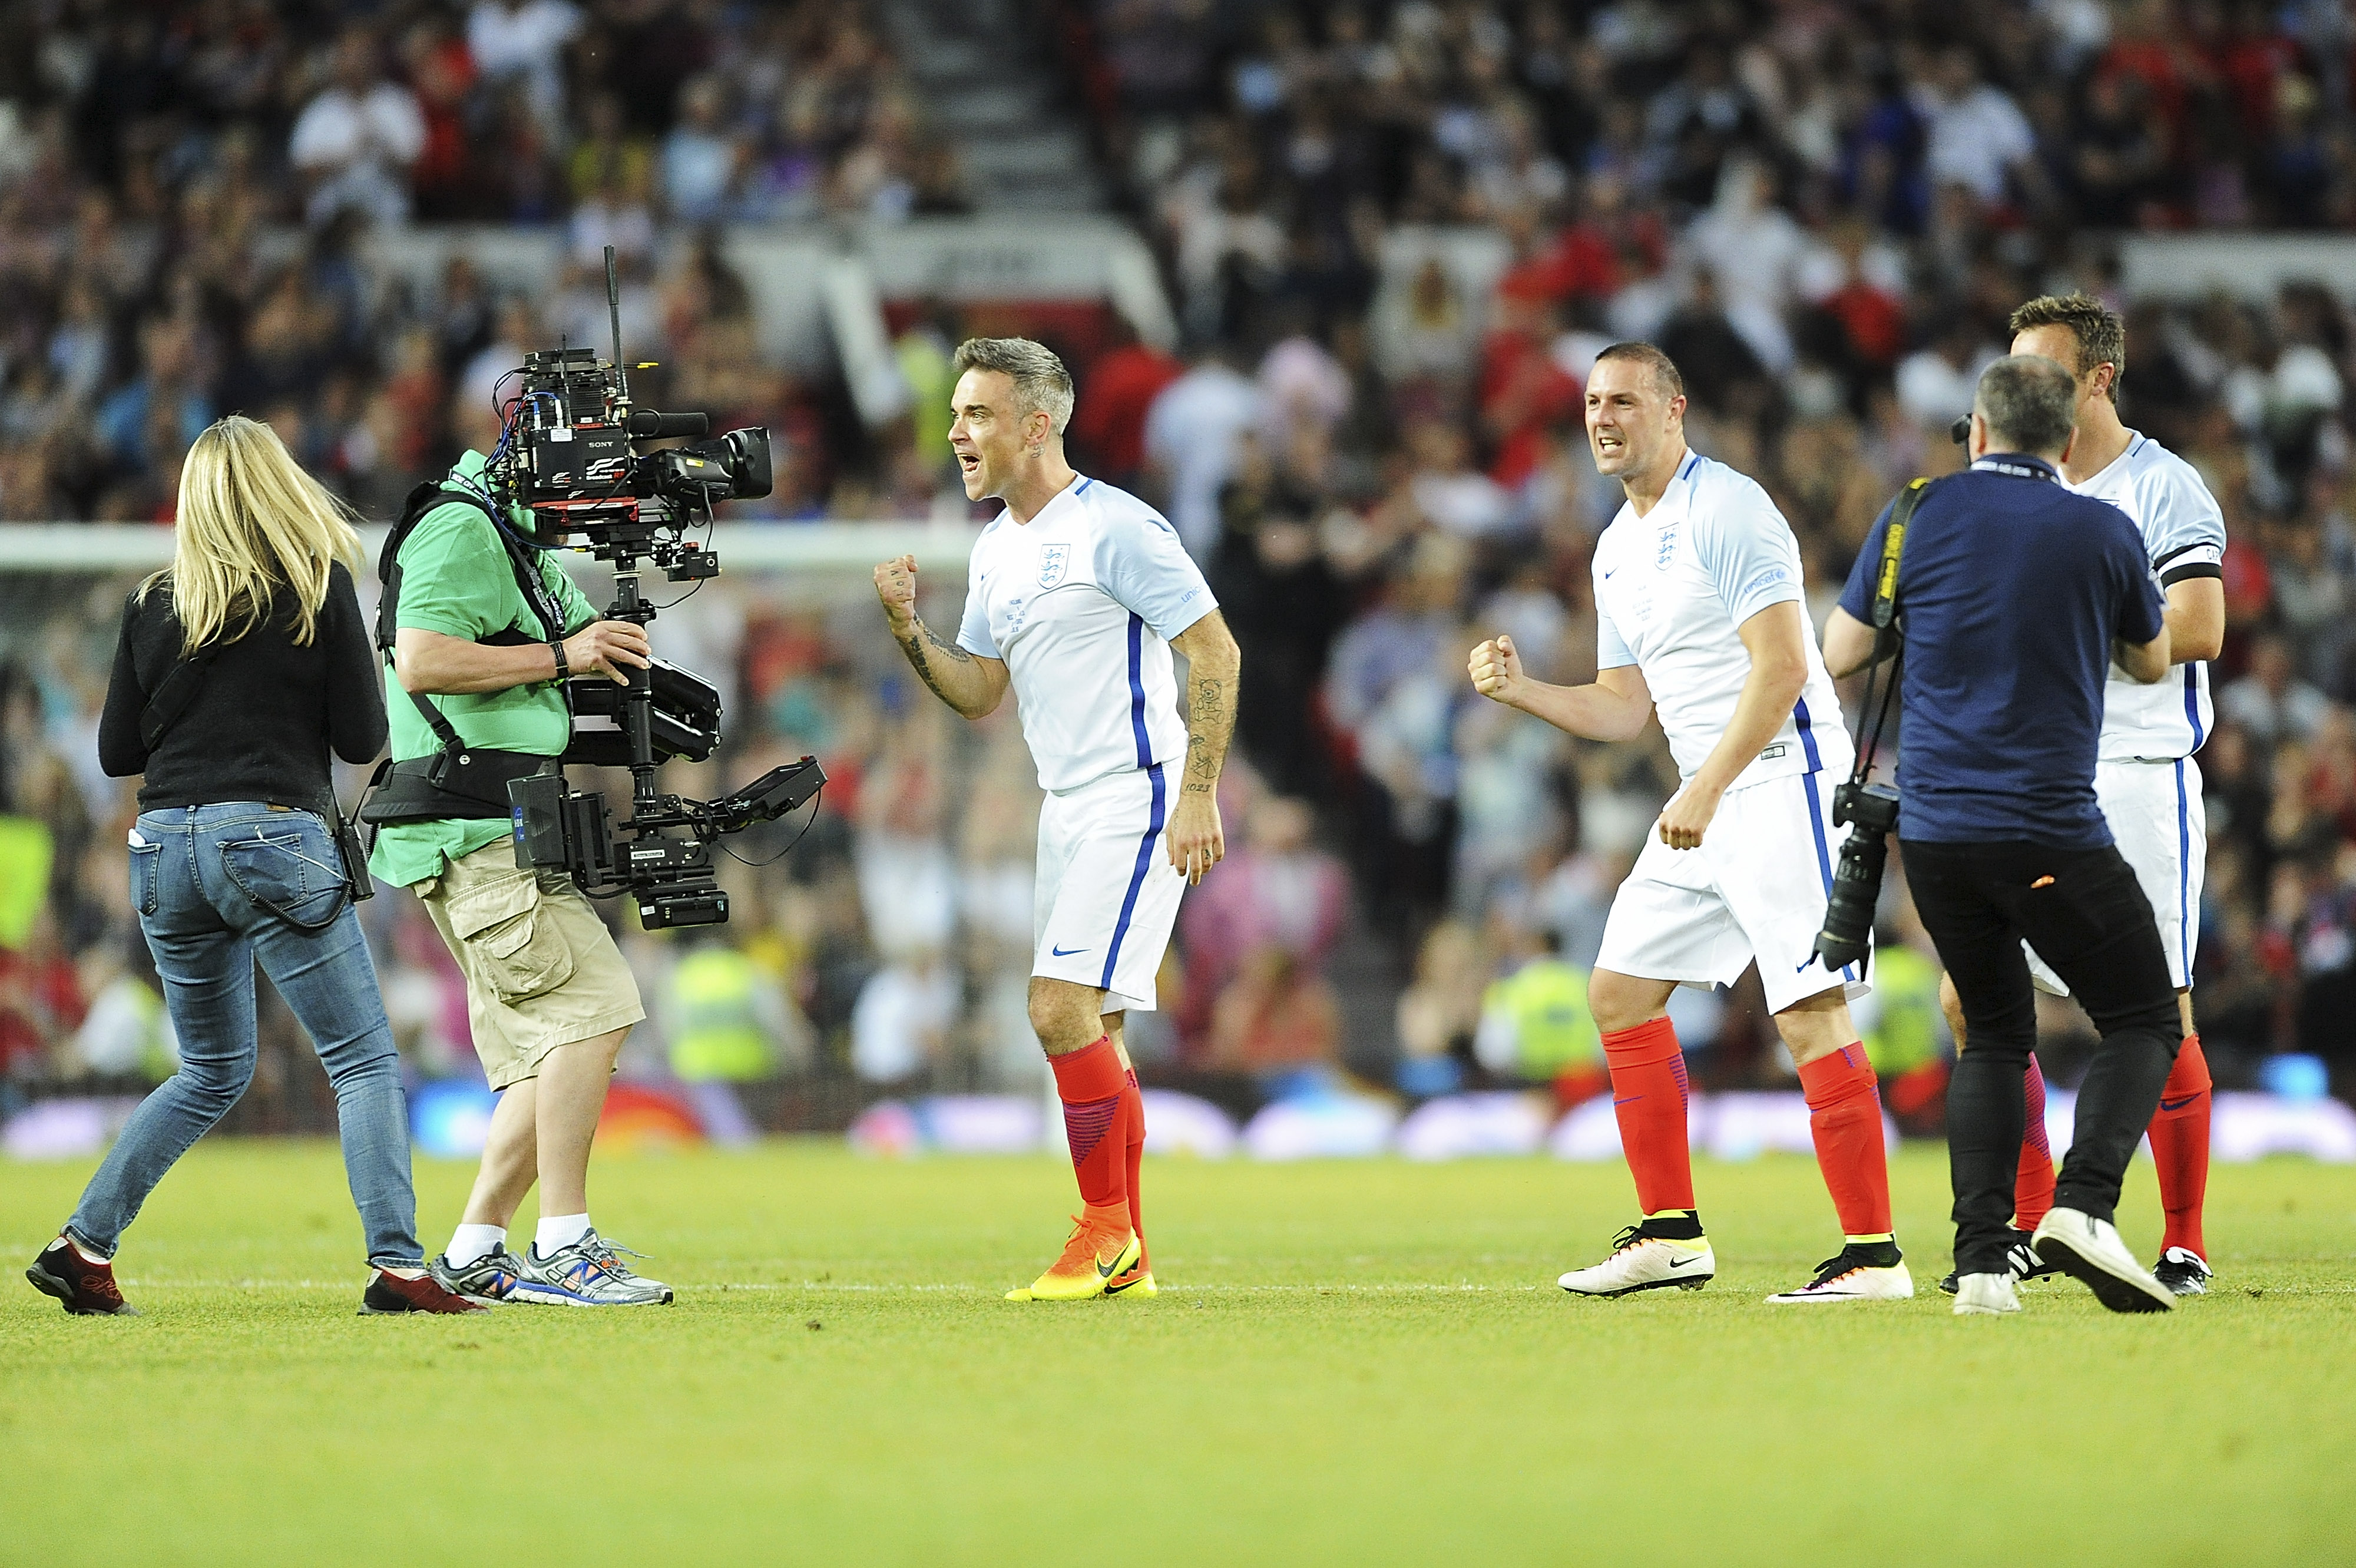 MANCHESTER, ENGLAND - JUNE 05: Robbie Williams and teammates celebrate during Soccer Aid at Old Trafford on June 5, 2016 in Manchester, England. (Photo by Dave J Hogan/Dave J Hogan/Getty Images)